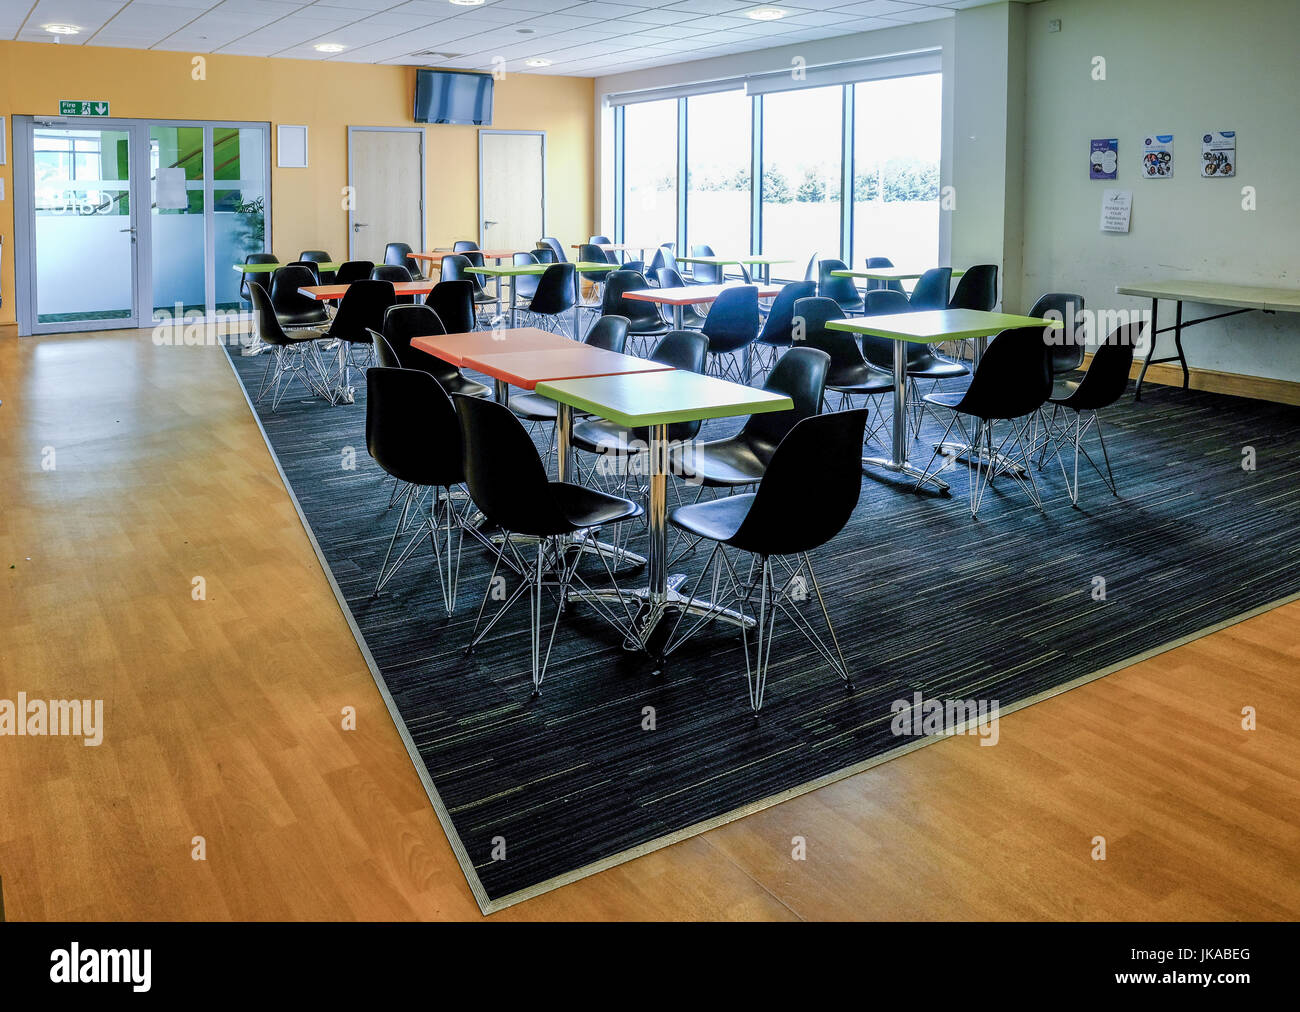 Essex England UK -June 12 2017Empty canteen with tables and chairs. Light and airy room with light coming in from the large windows. & Essex England UK -June 12 2017:Empty canteen with tables and Stock ...